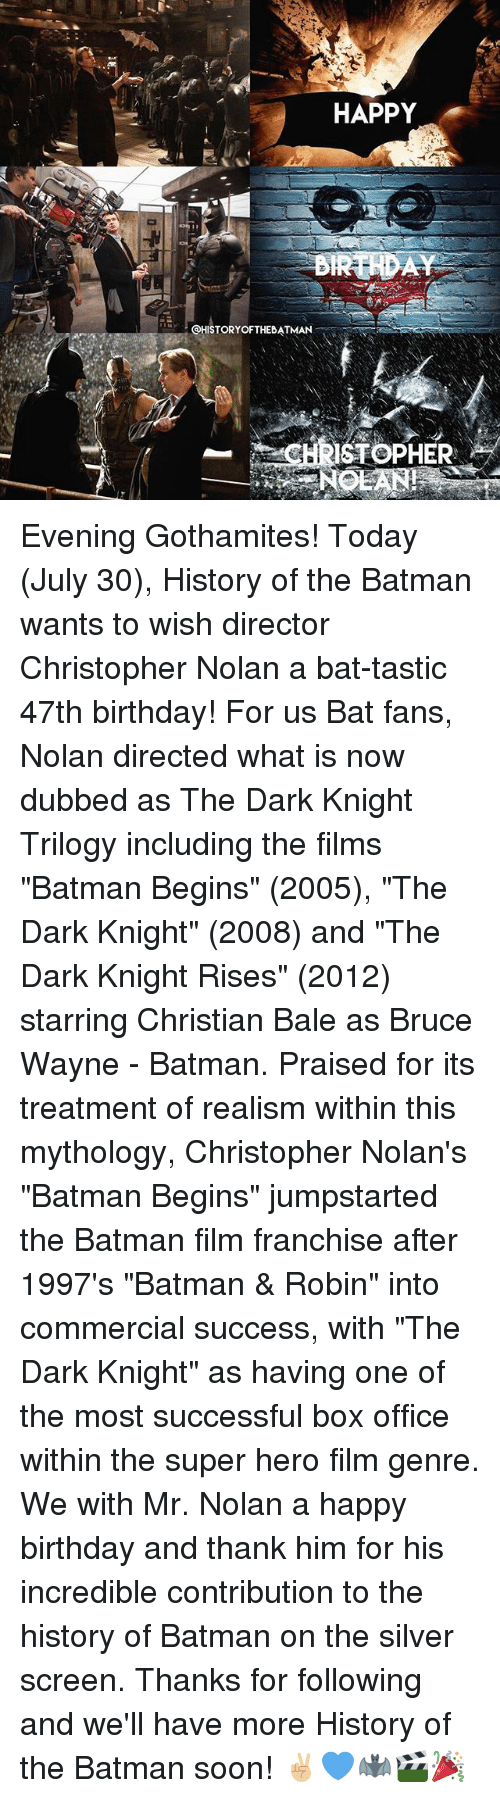 "christopher nolan: HAPPY  @HISTORYOFTHEBATMAN-...  ISTOPHER Evening Gothamites! Today (July 30), History of the Batman wants to wish director Christopher Nolan a bat-tastic 47th birthday! For us Bat fans, Nolan directed what is now dubbed as The Dark Knight Trilogy including the films ""Batman Begins"" (2005), ""The Dark Knight"" (2008) and ""The Dark Knight Rises"" (2012) starring Christian Bale as Bruce Wayne - Batman. Praised for its treatment of realism within this mythology, Christopher Nolan's ""Batman Begins"" jumpstarted the Batman film franchise after 1997's ""Batman & Robin"" into commercial success, with ""The Dark Knight"" as having one of the most successful box office within the super hero film genre. We with Mr. Nolan a happy birthday and thank him for his incredible contribution to the history of Batman on the silver screen. Thanks for following and we'll have more History of the Batman soon! ✌🏼💙🦇🎬🎉"